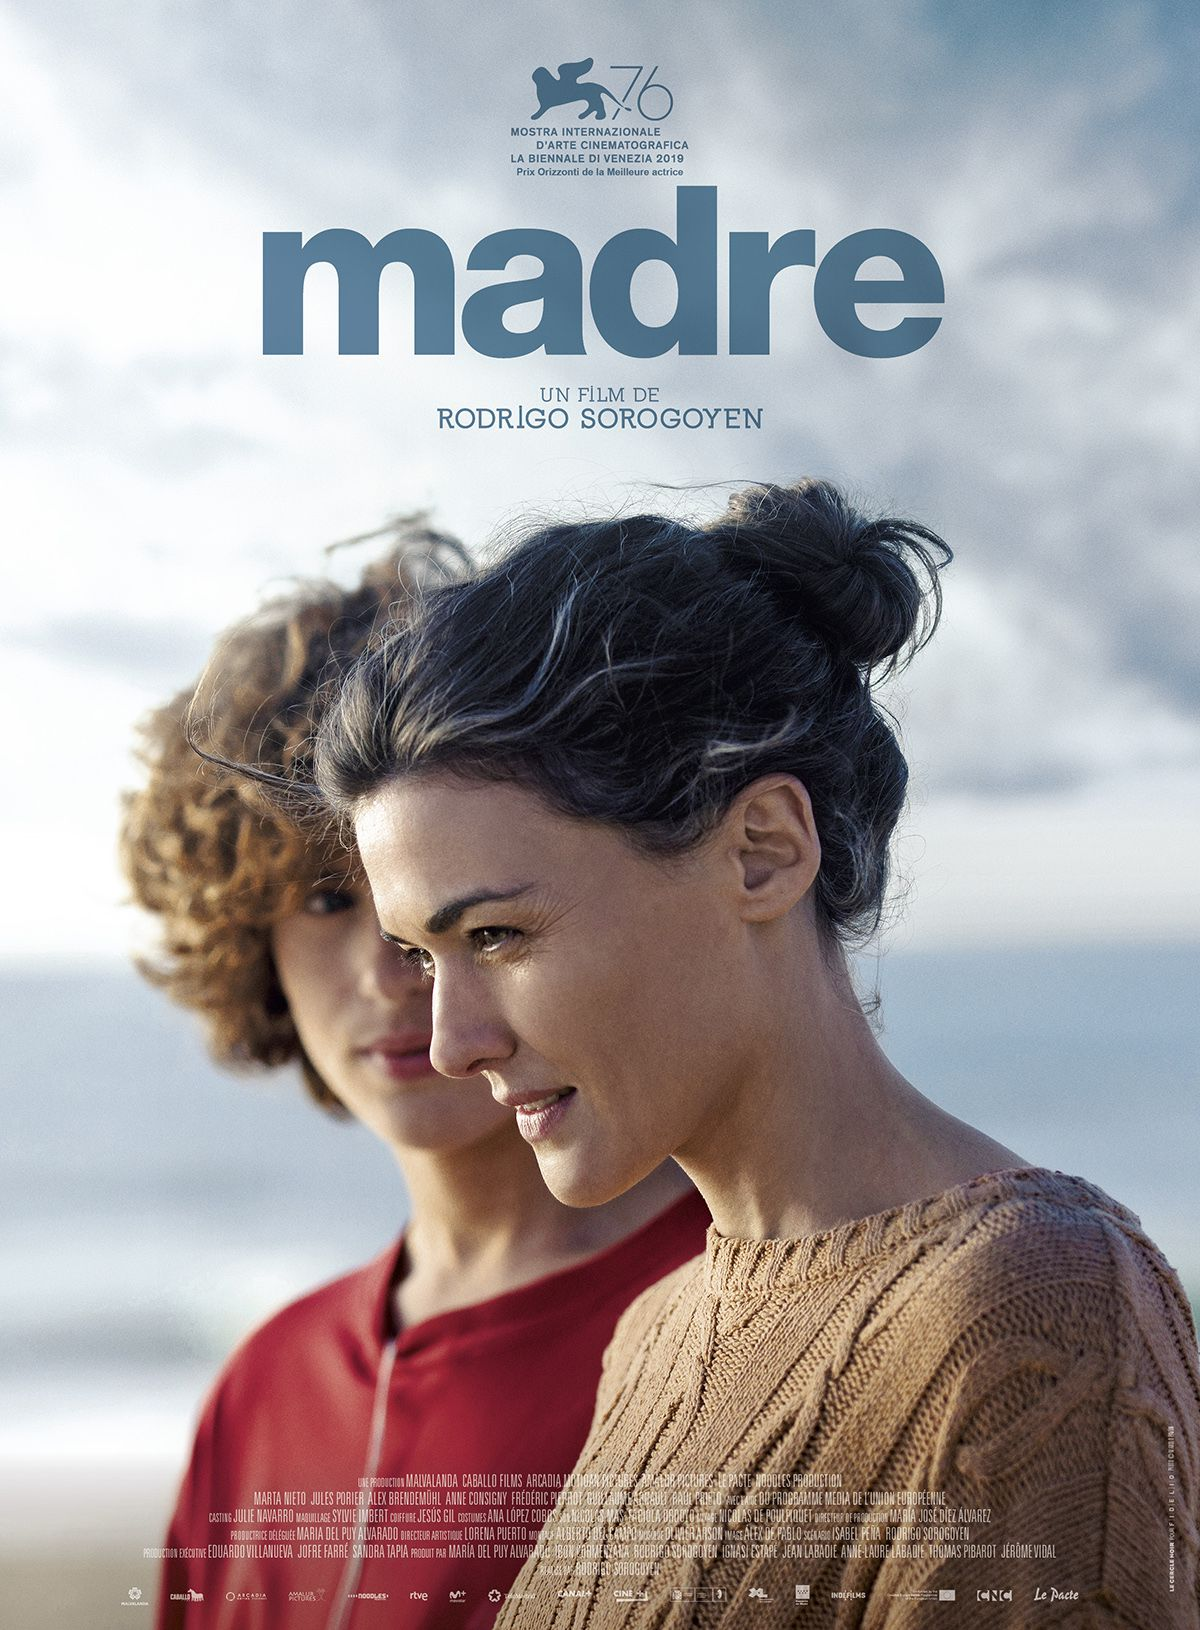 Madre - Film (2020) streaming VF gratuit complet